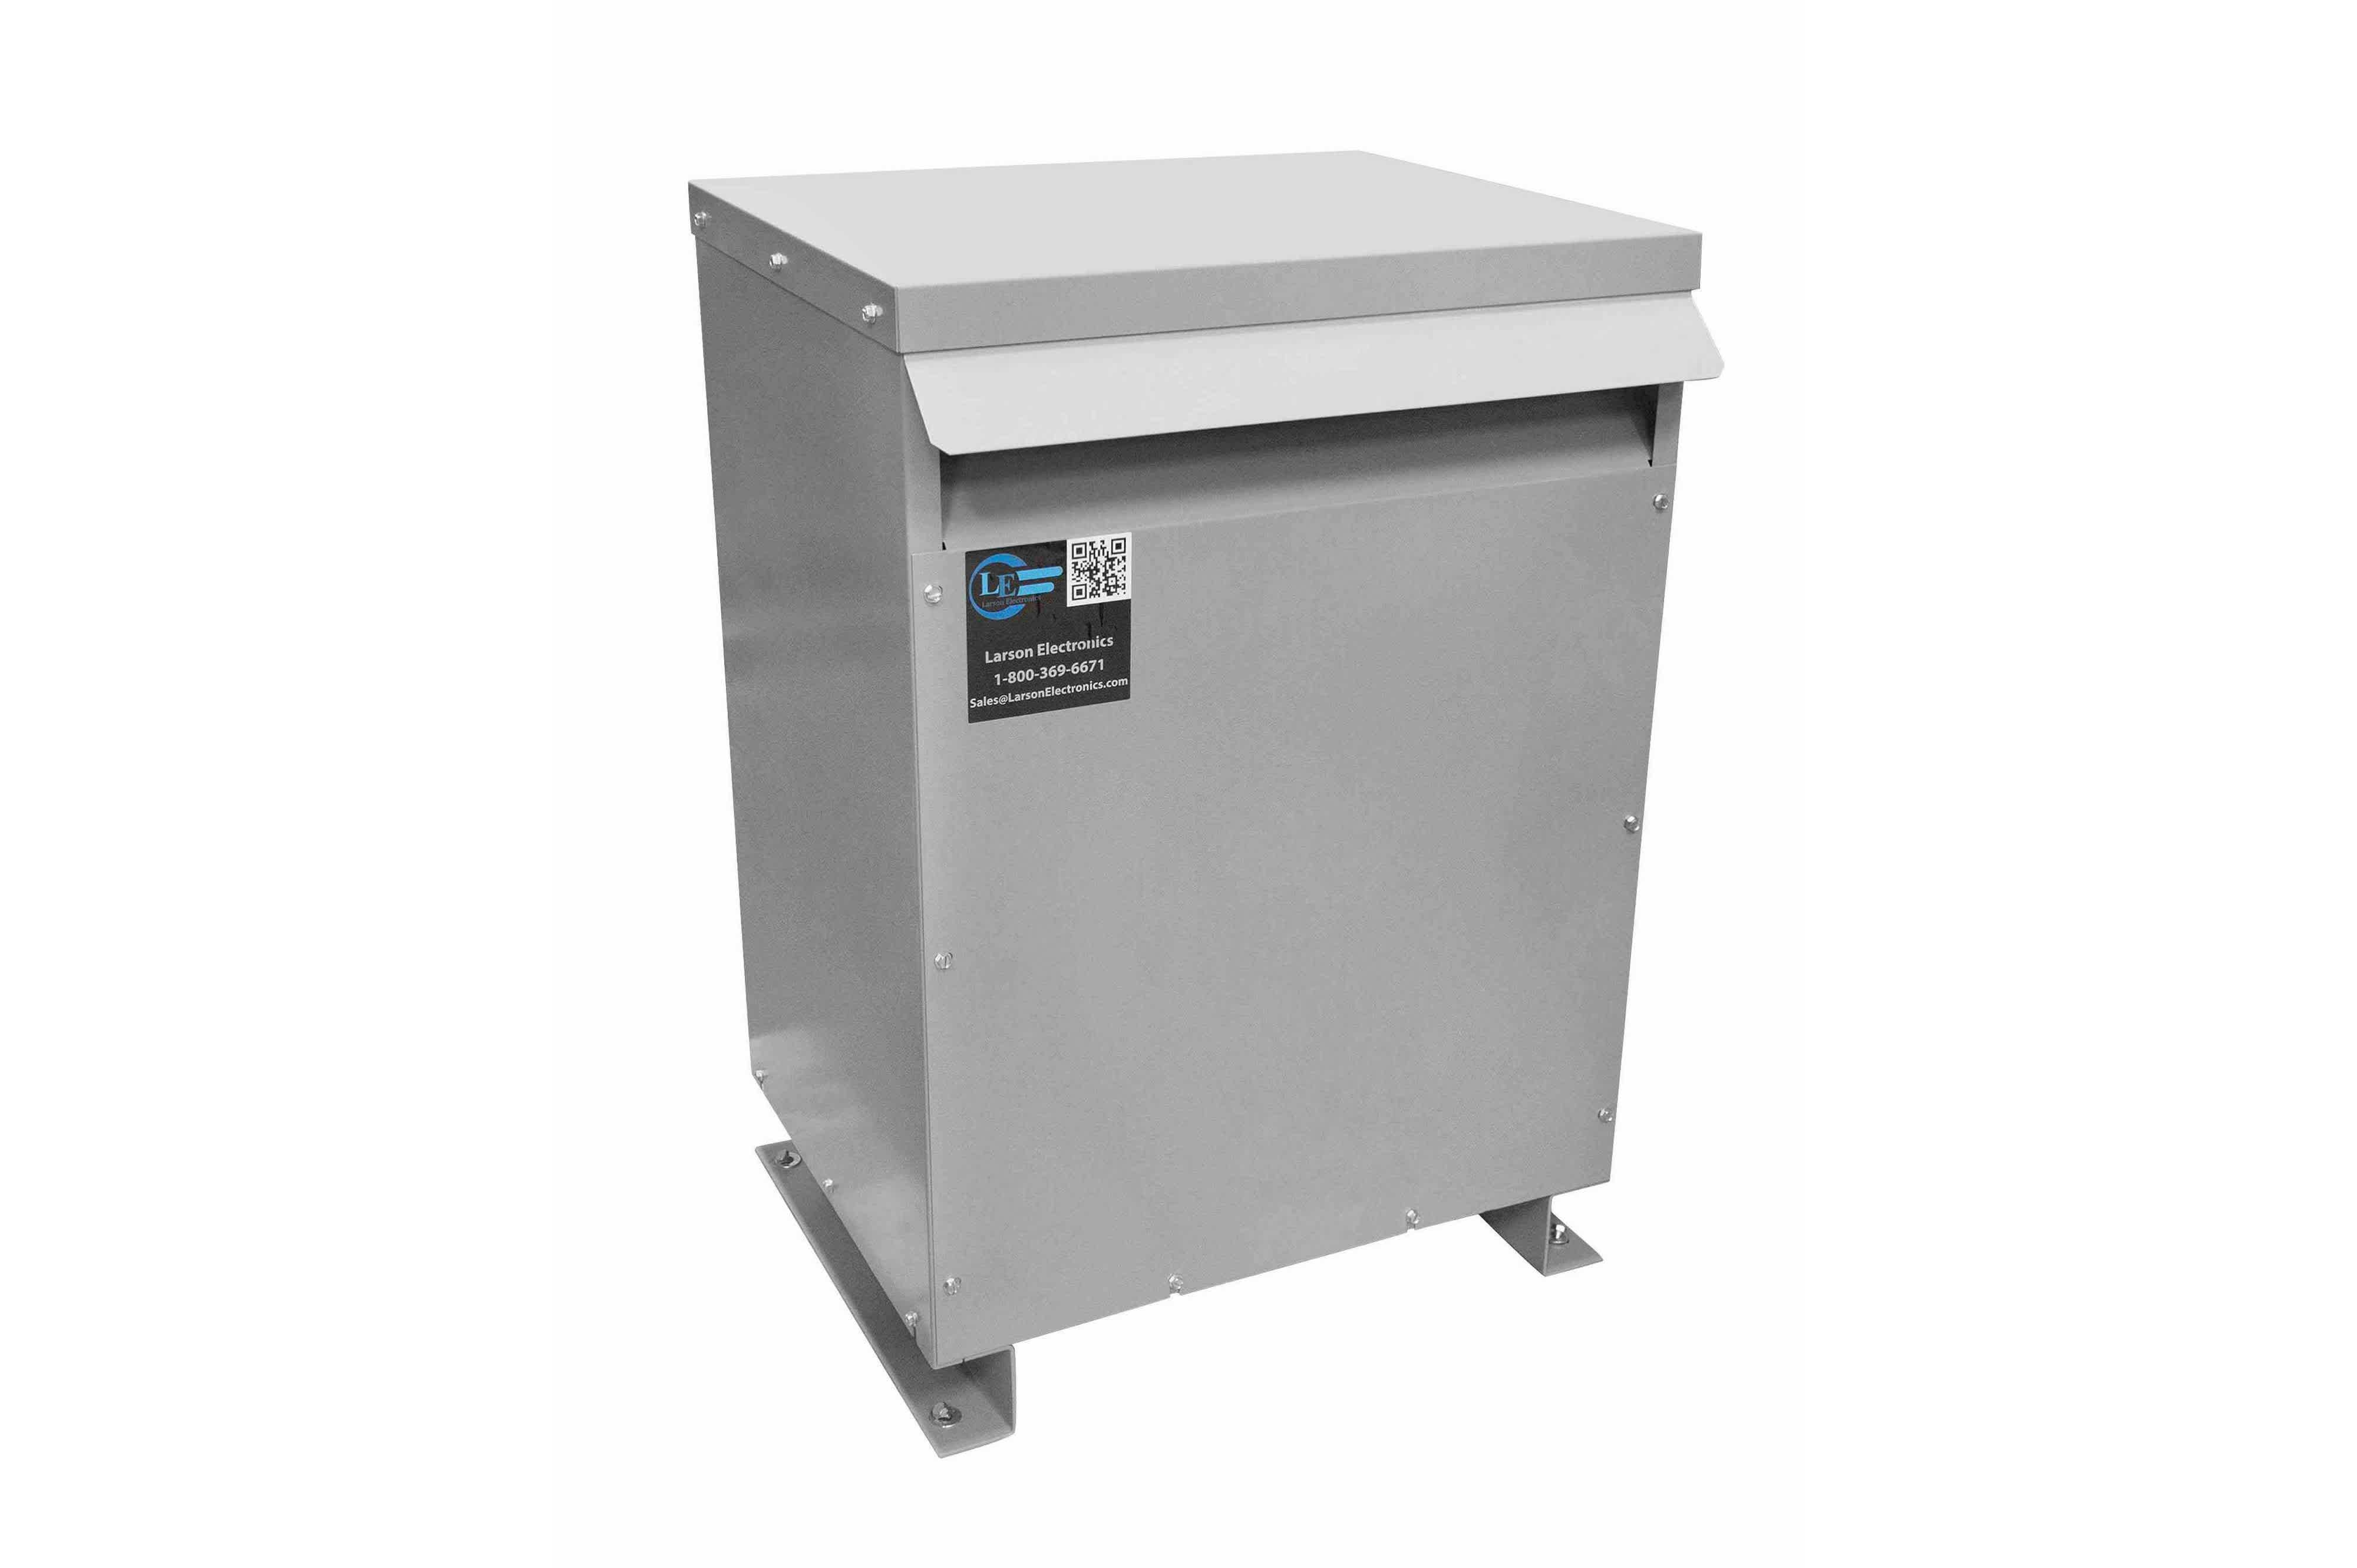 60 kVA 3PH Isolation Transformer, 460V Delta Primary, 415V Delta Secondary, N3R, Ventilated, 60 Hz